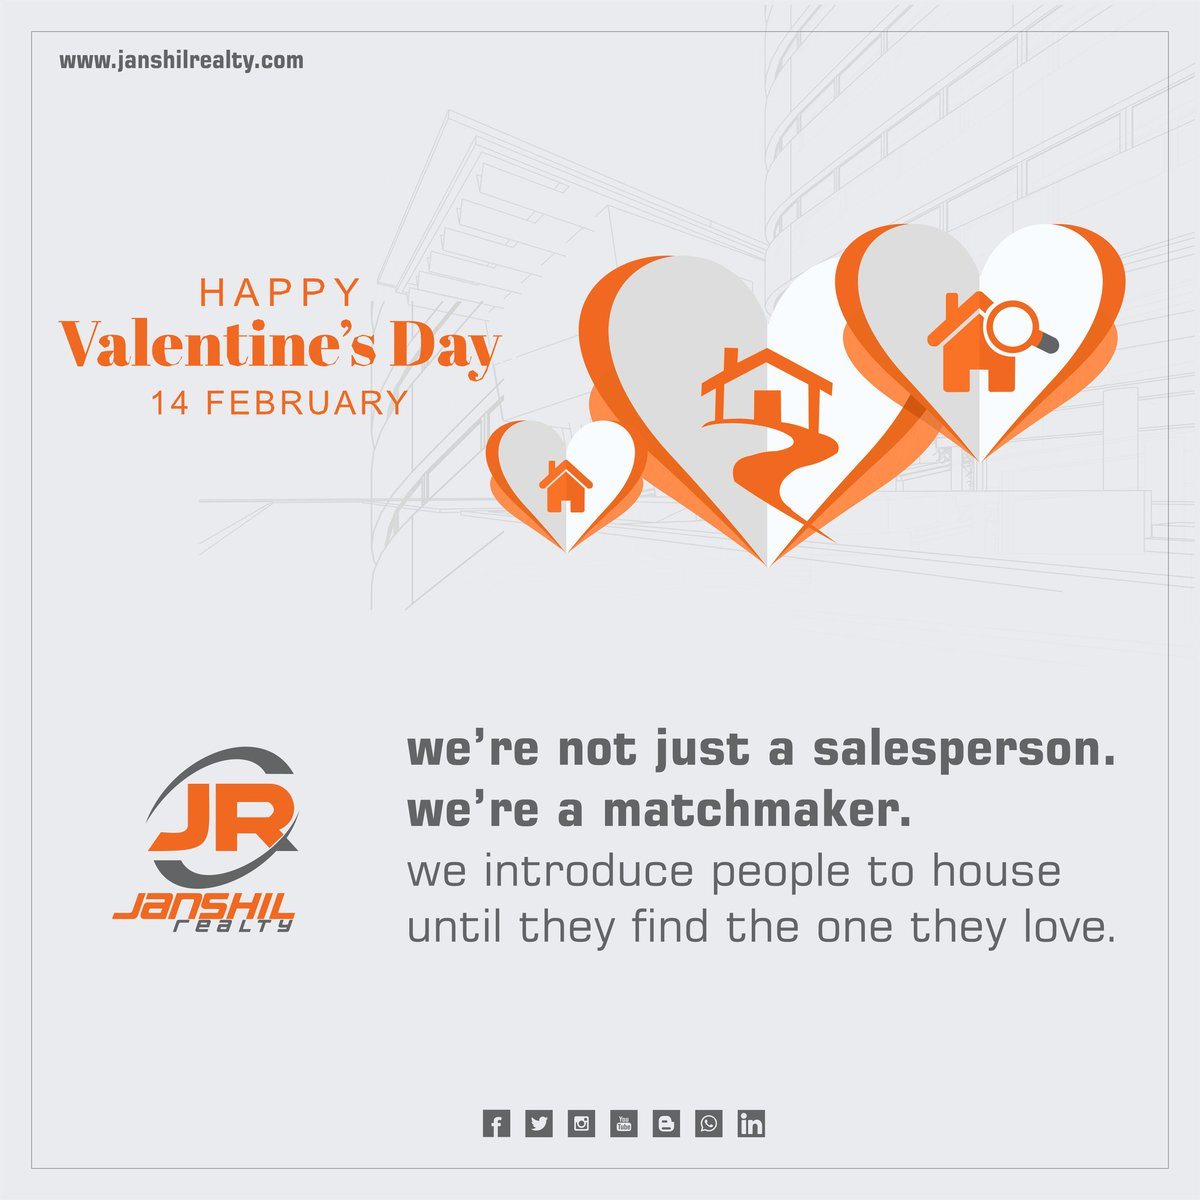 We're not just #salesperson we're a #matchmaker we introduce people to #house until they find the one they #love #happyvalentinesday  #realestate #property #Investment  #propertymanagement #Realtor #janshilrealty #southbopal  #Ahmedabad #propertymanagment #PropertyInvestmentpic.twitter.com/LQIlYRSvXQ